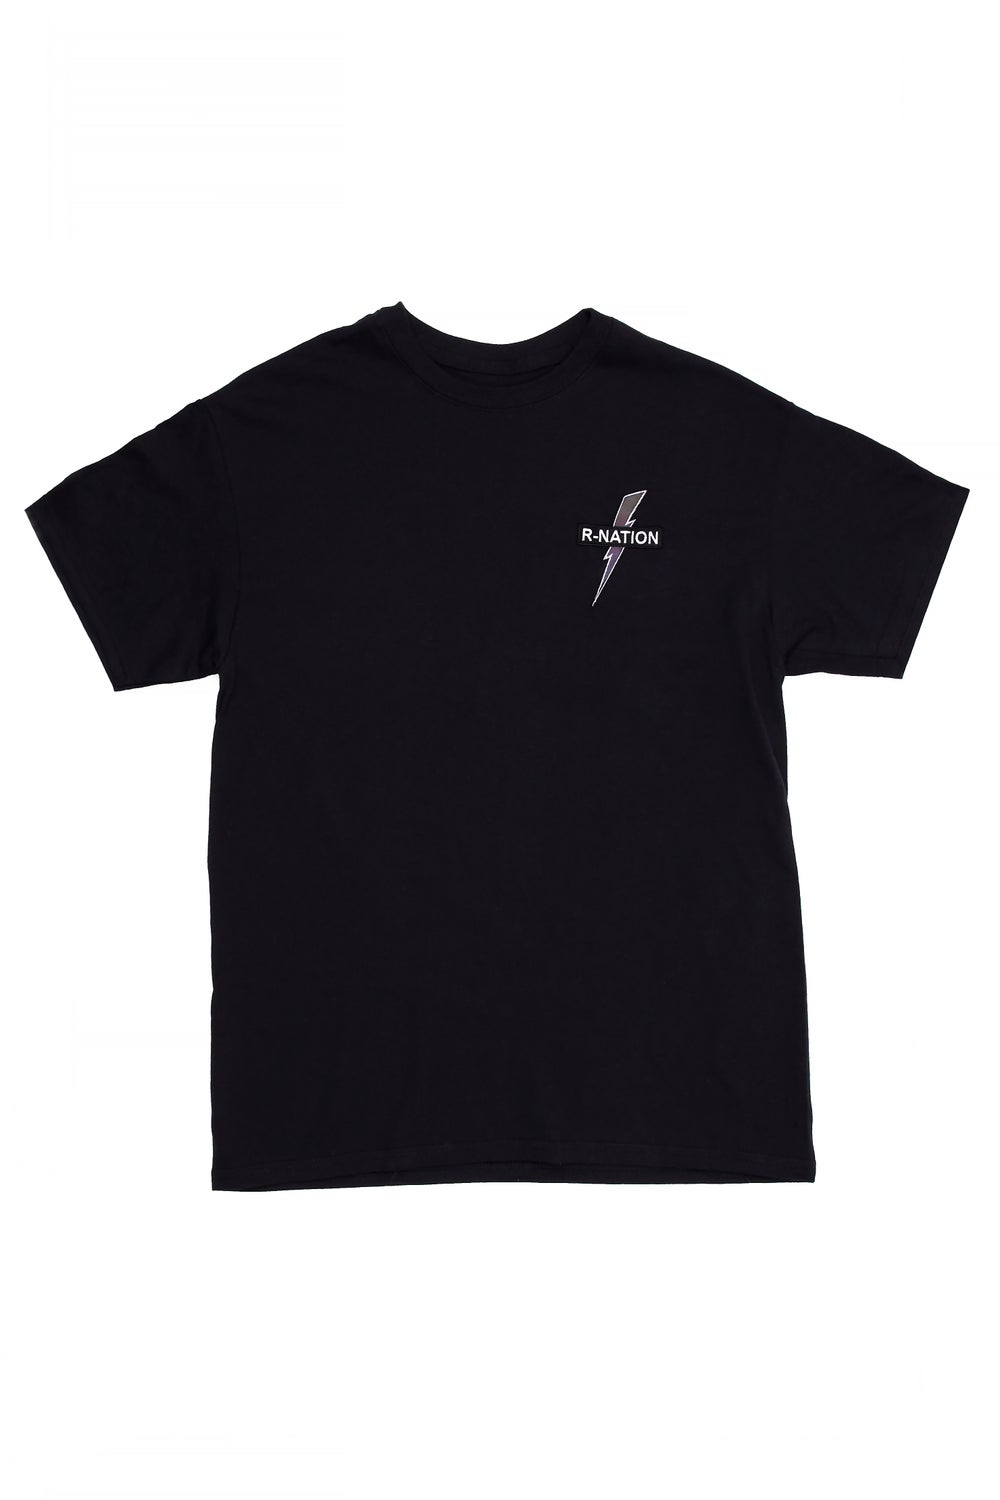 Image of R-NATION BLACK TEE RAINBOW LOGO